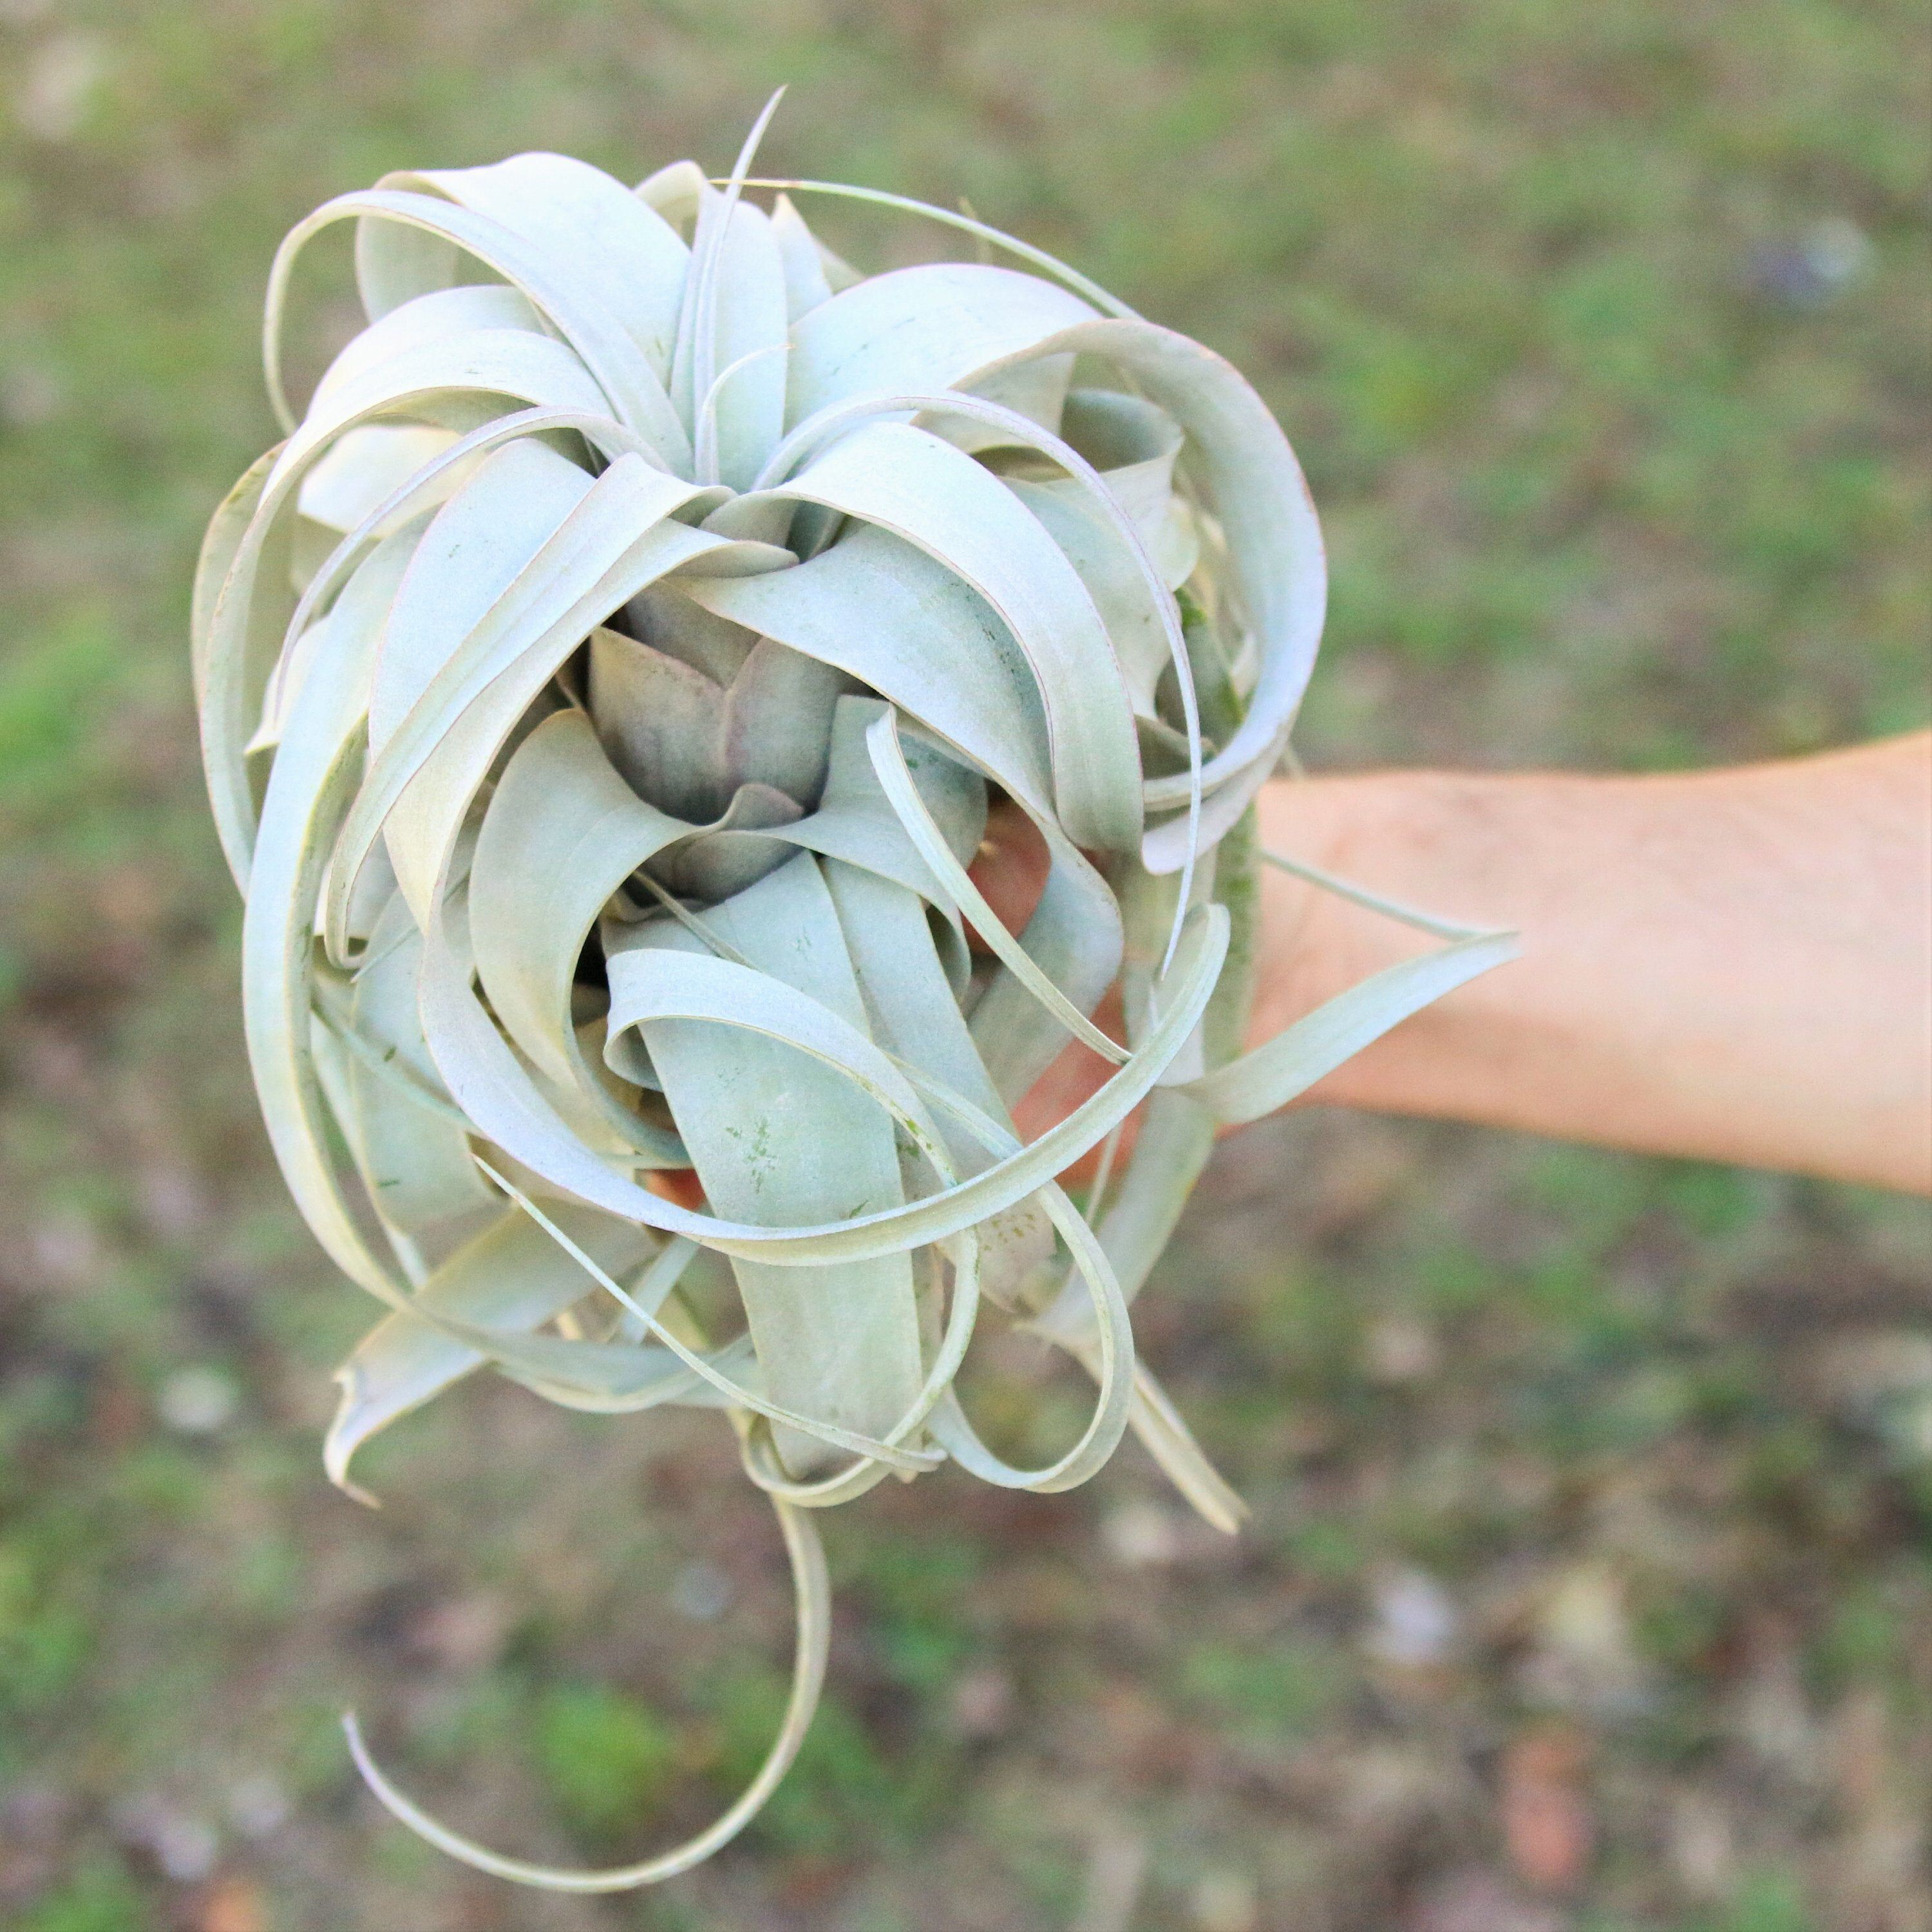 Large Air Plant Xerographica Air Plant Fast Free Shipping Etsy In 2020 Large Air Plants Air Plants Air Plants Wholesale